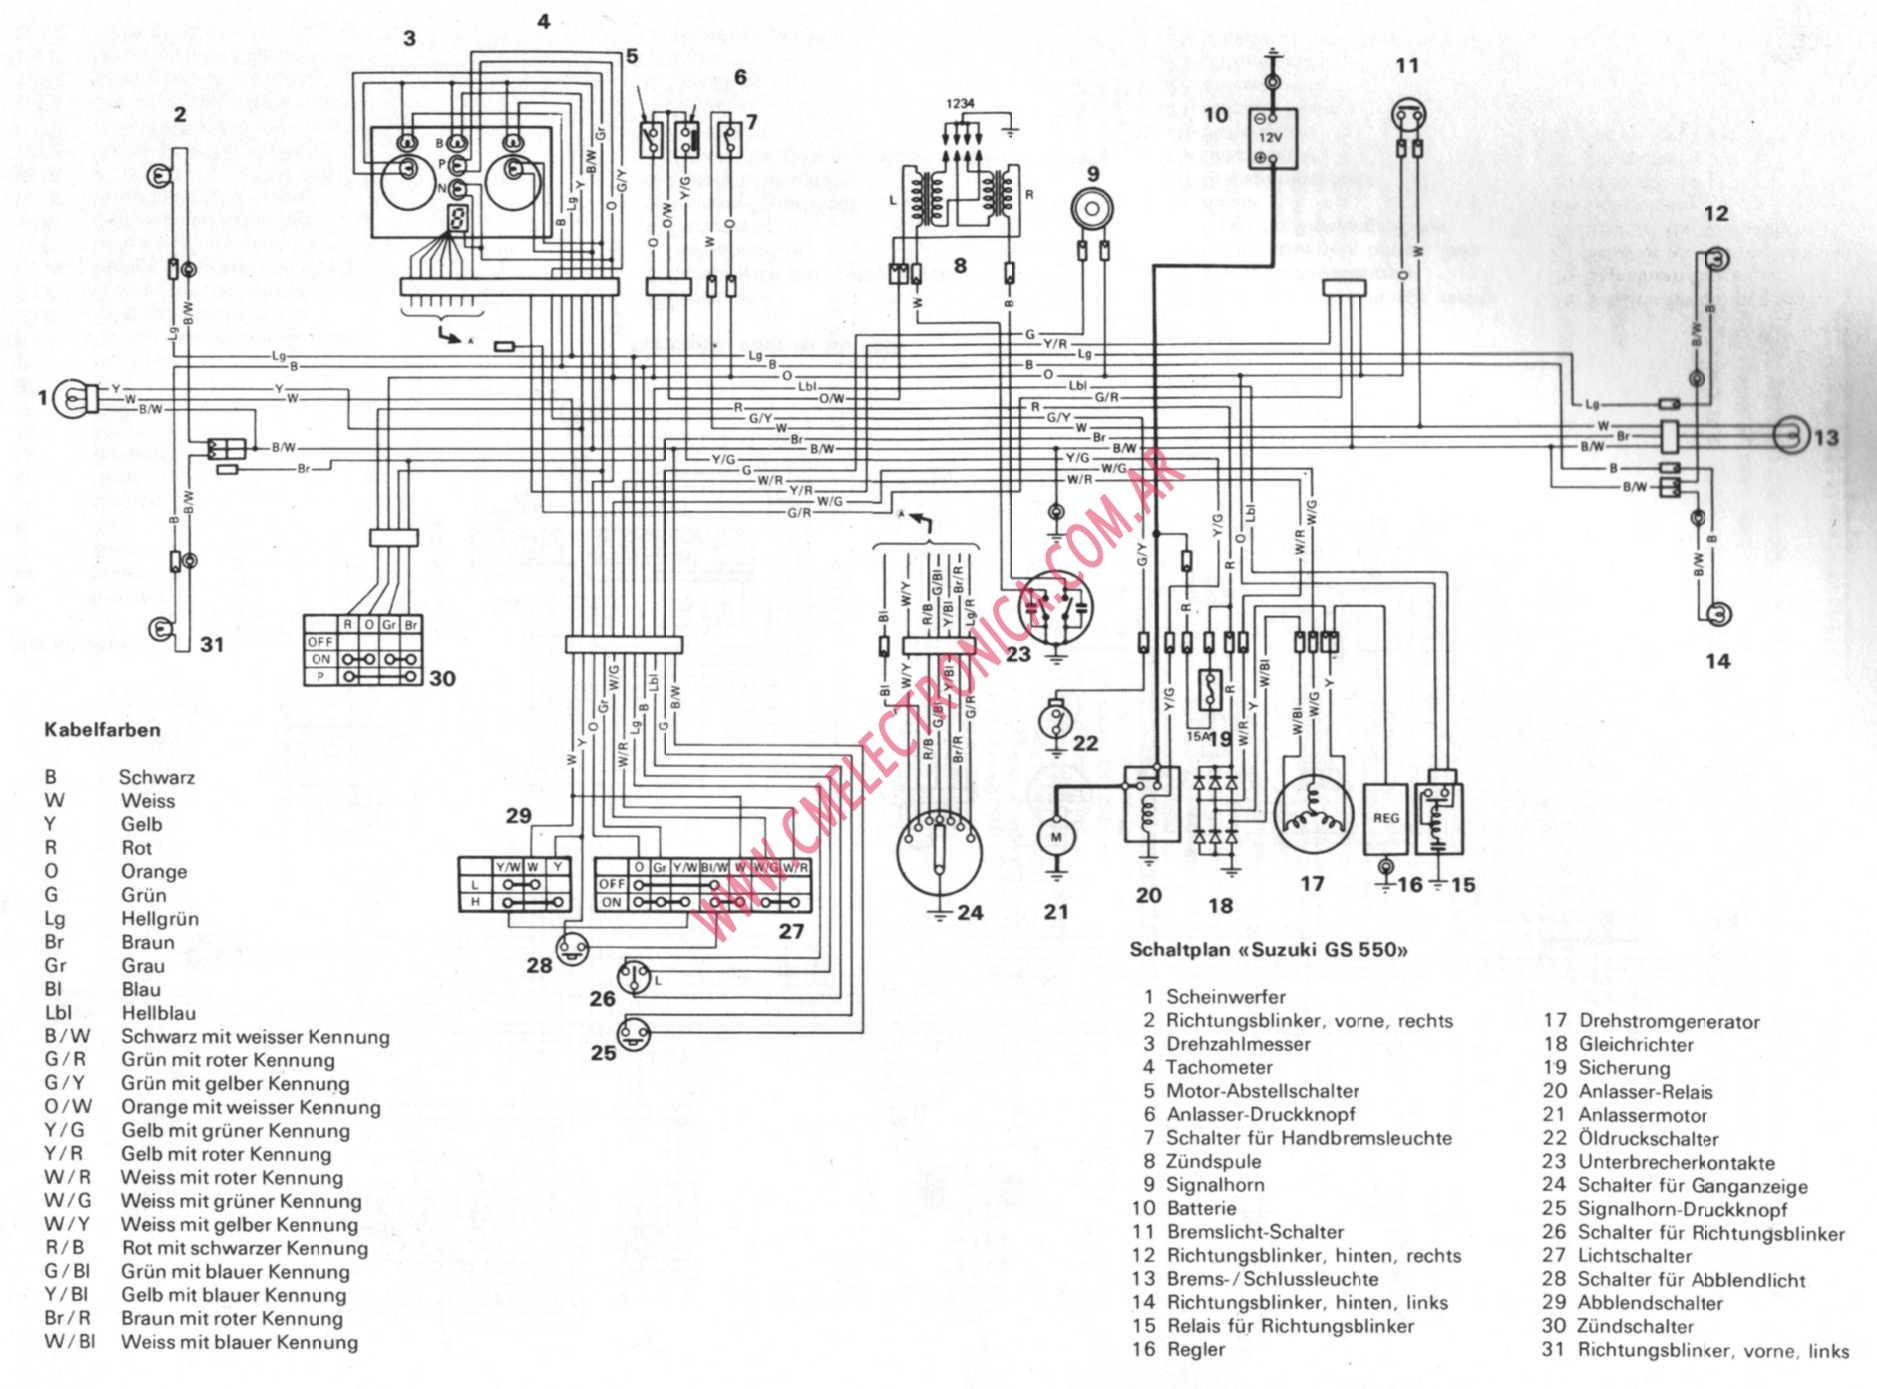 1982 Suzuki Gs850 Wiring Diagram Suzuki Gs550 Wiring Diagram Of 1982 Suzuki Gs850 Wiring Diagram 1980 Suzuki Ts250 Wiring Diagram Wiring Diagrams